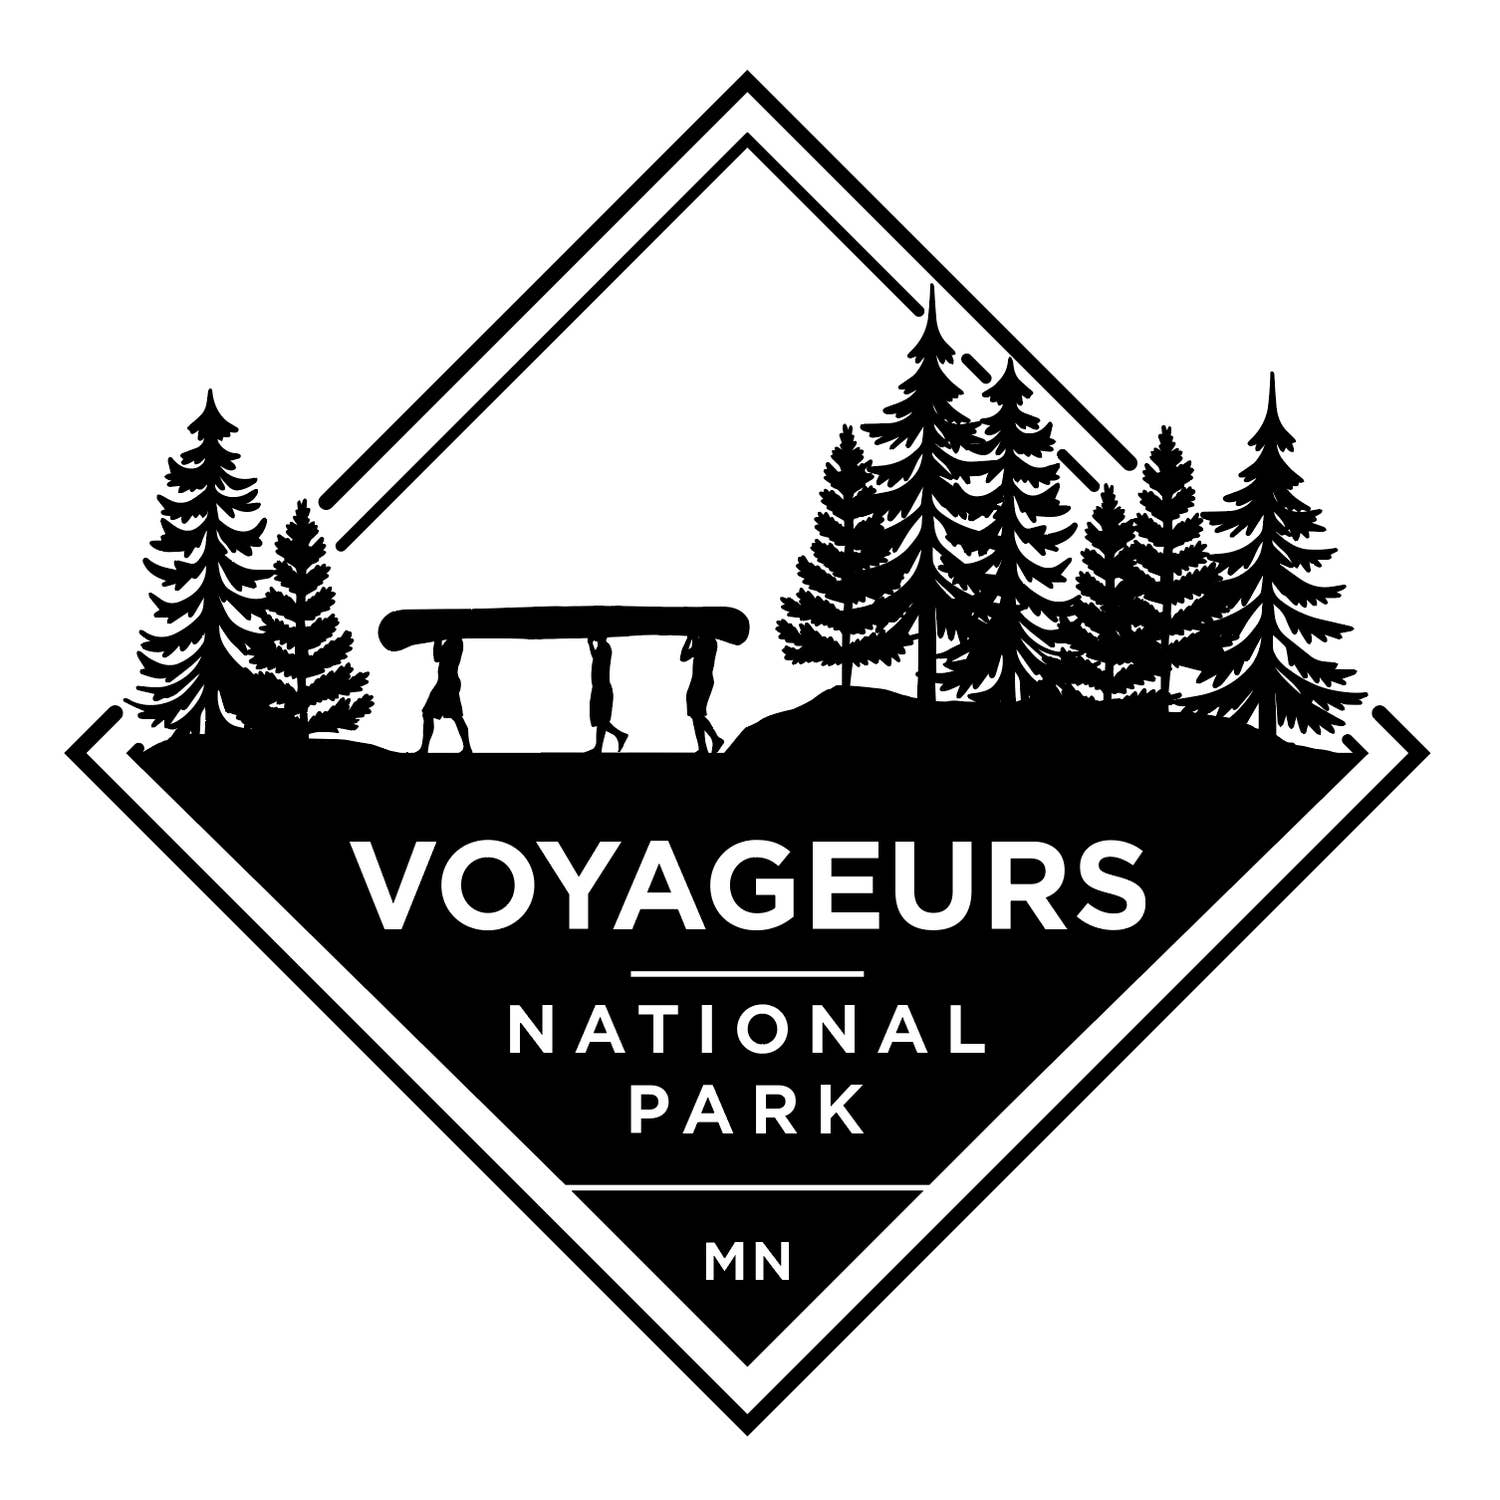 Voyageurs National Park Sticker - The Lake and Company